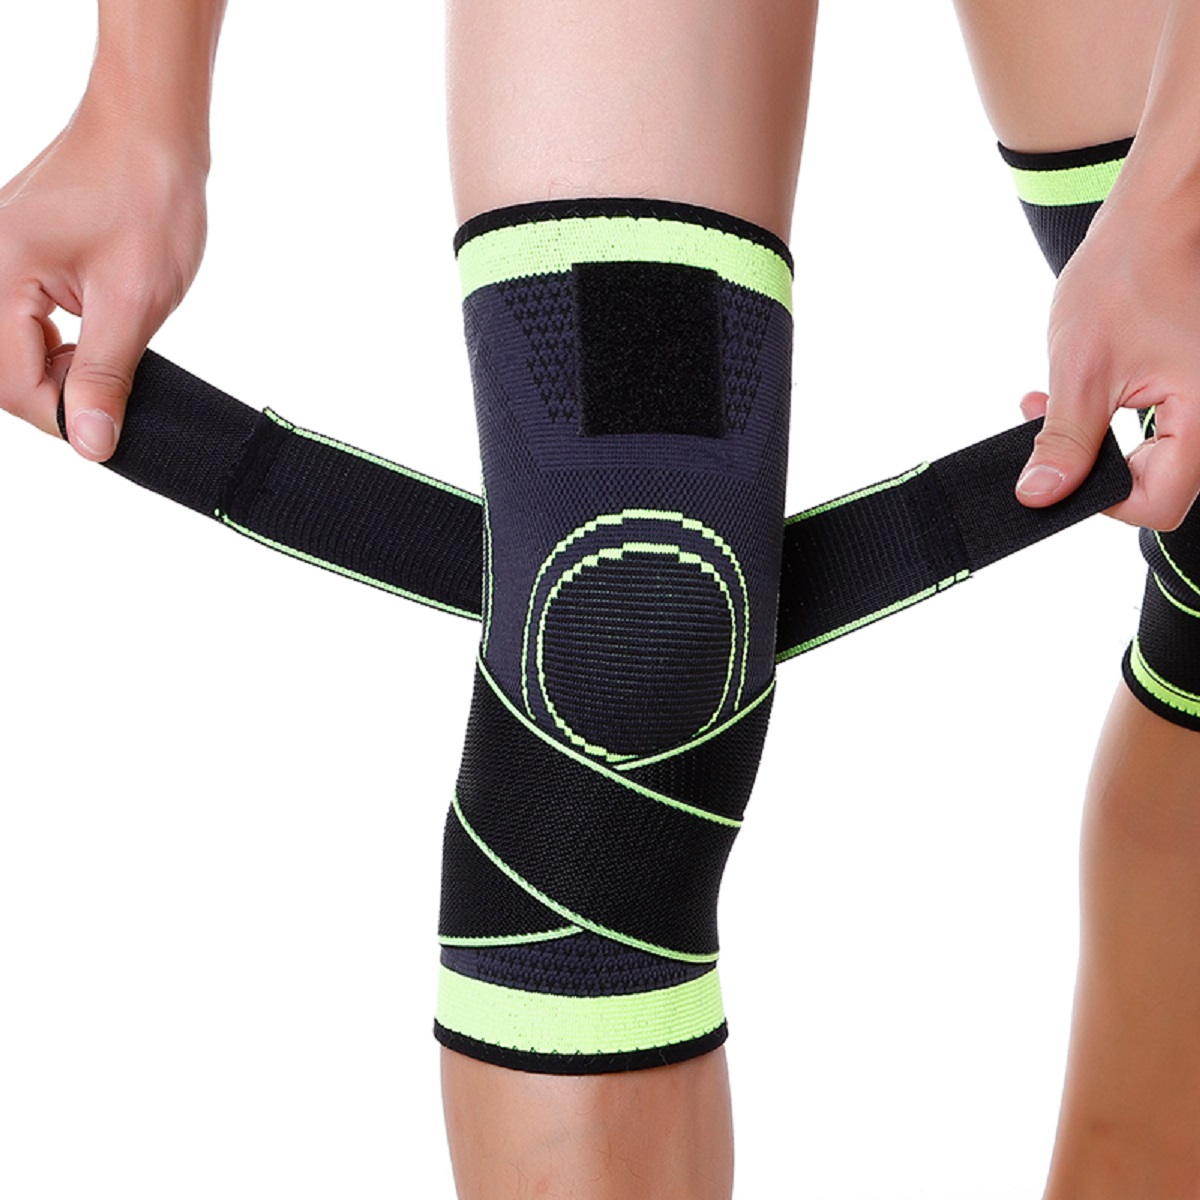 USA-3D-Weaving-Knee-Brace-Breathable-Sleeve-Support-for-Running-Jogging-Sports miniature 16